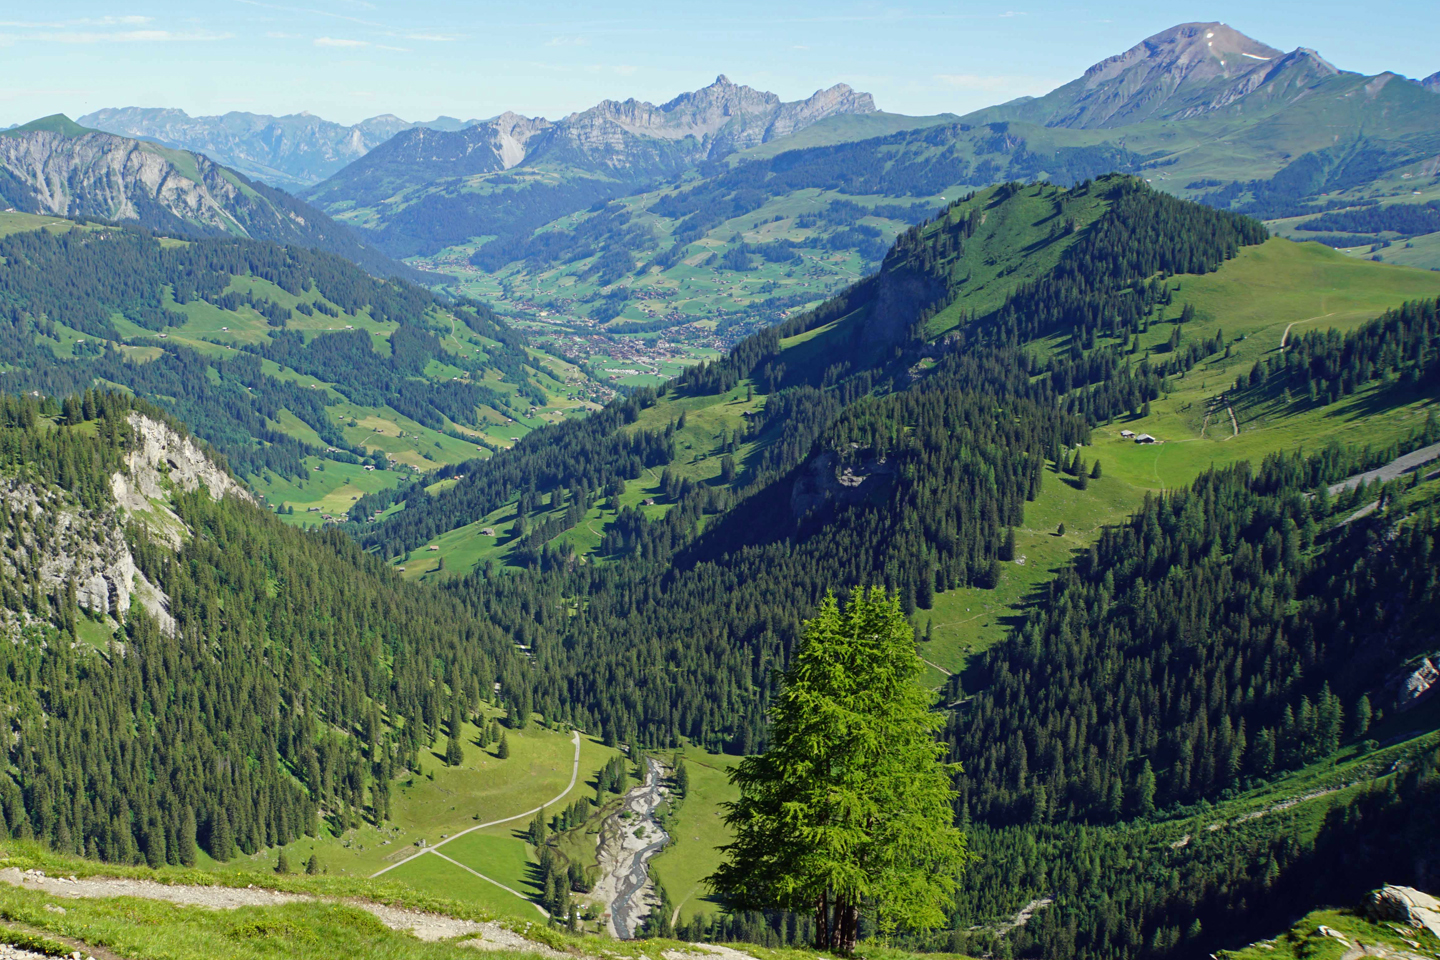 The village of Lenk is surrounded by alpine meadows and the Bernese Oberland mountains